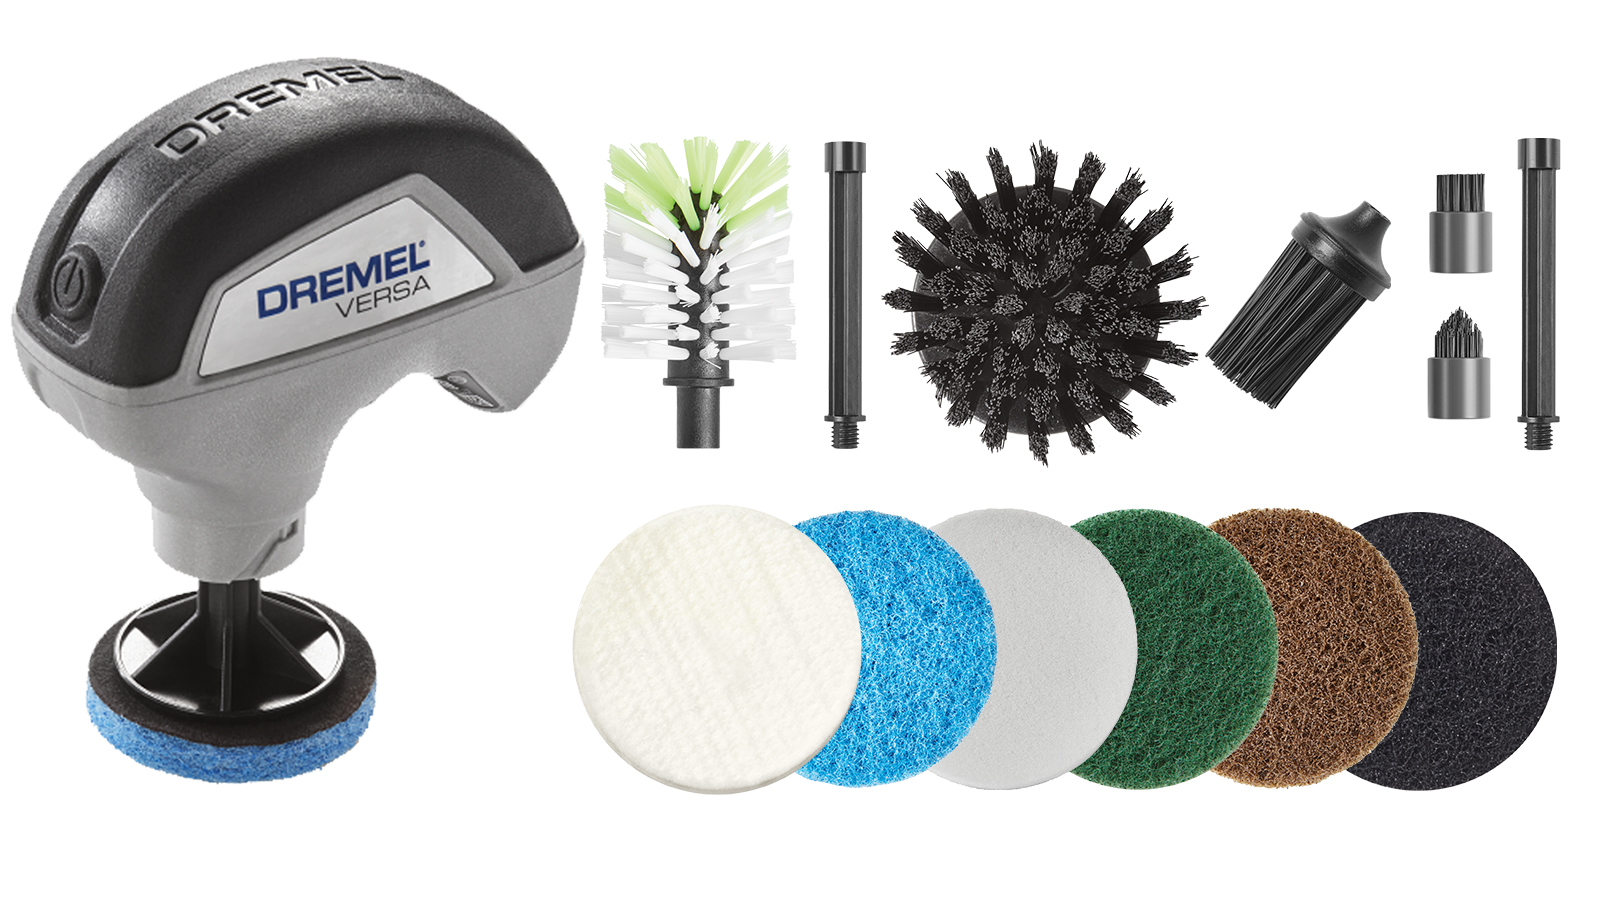 Broadest range of cleaning accessories on the market: Power scrubber Dremel Versa